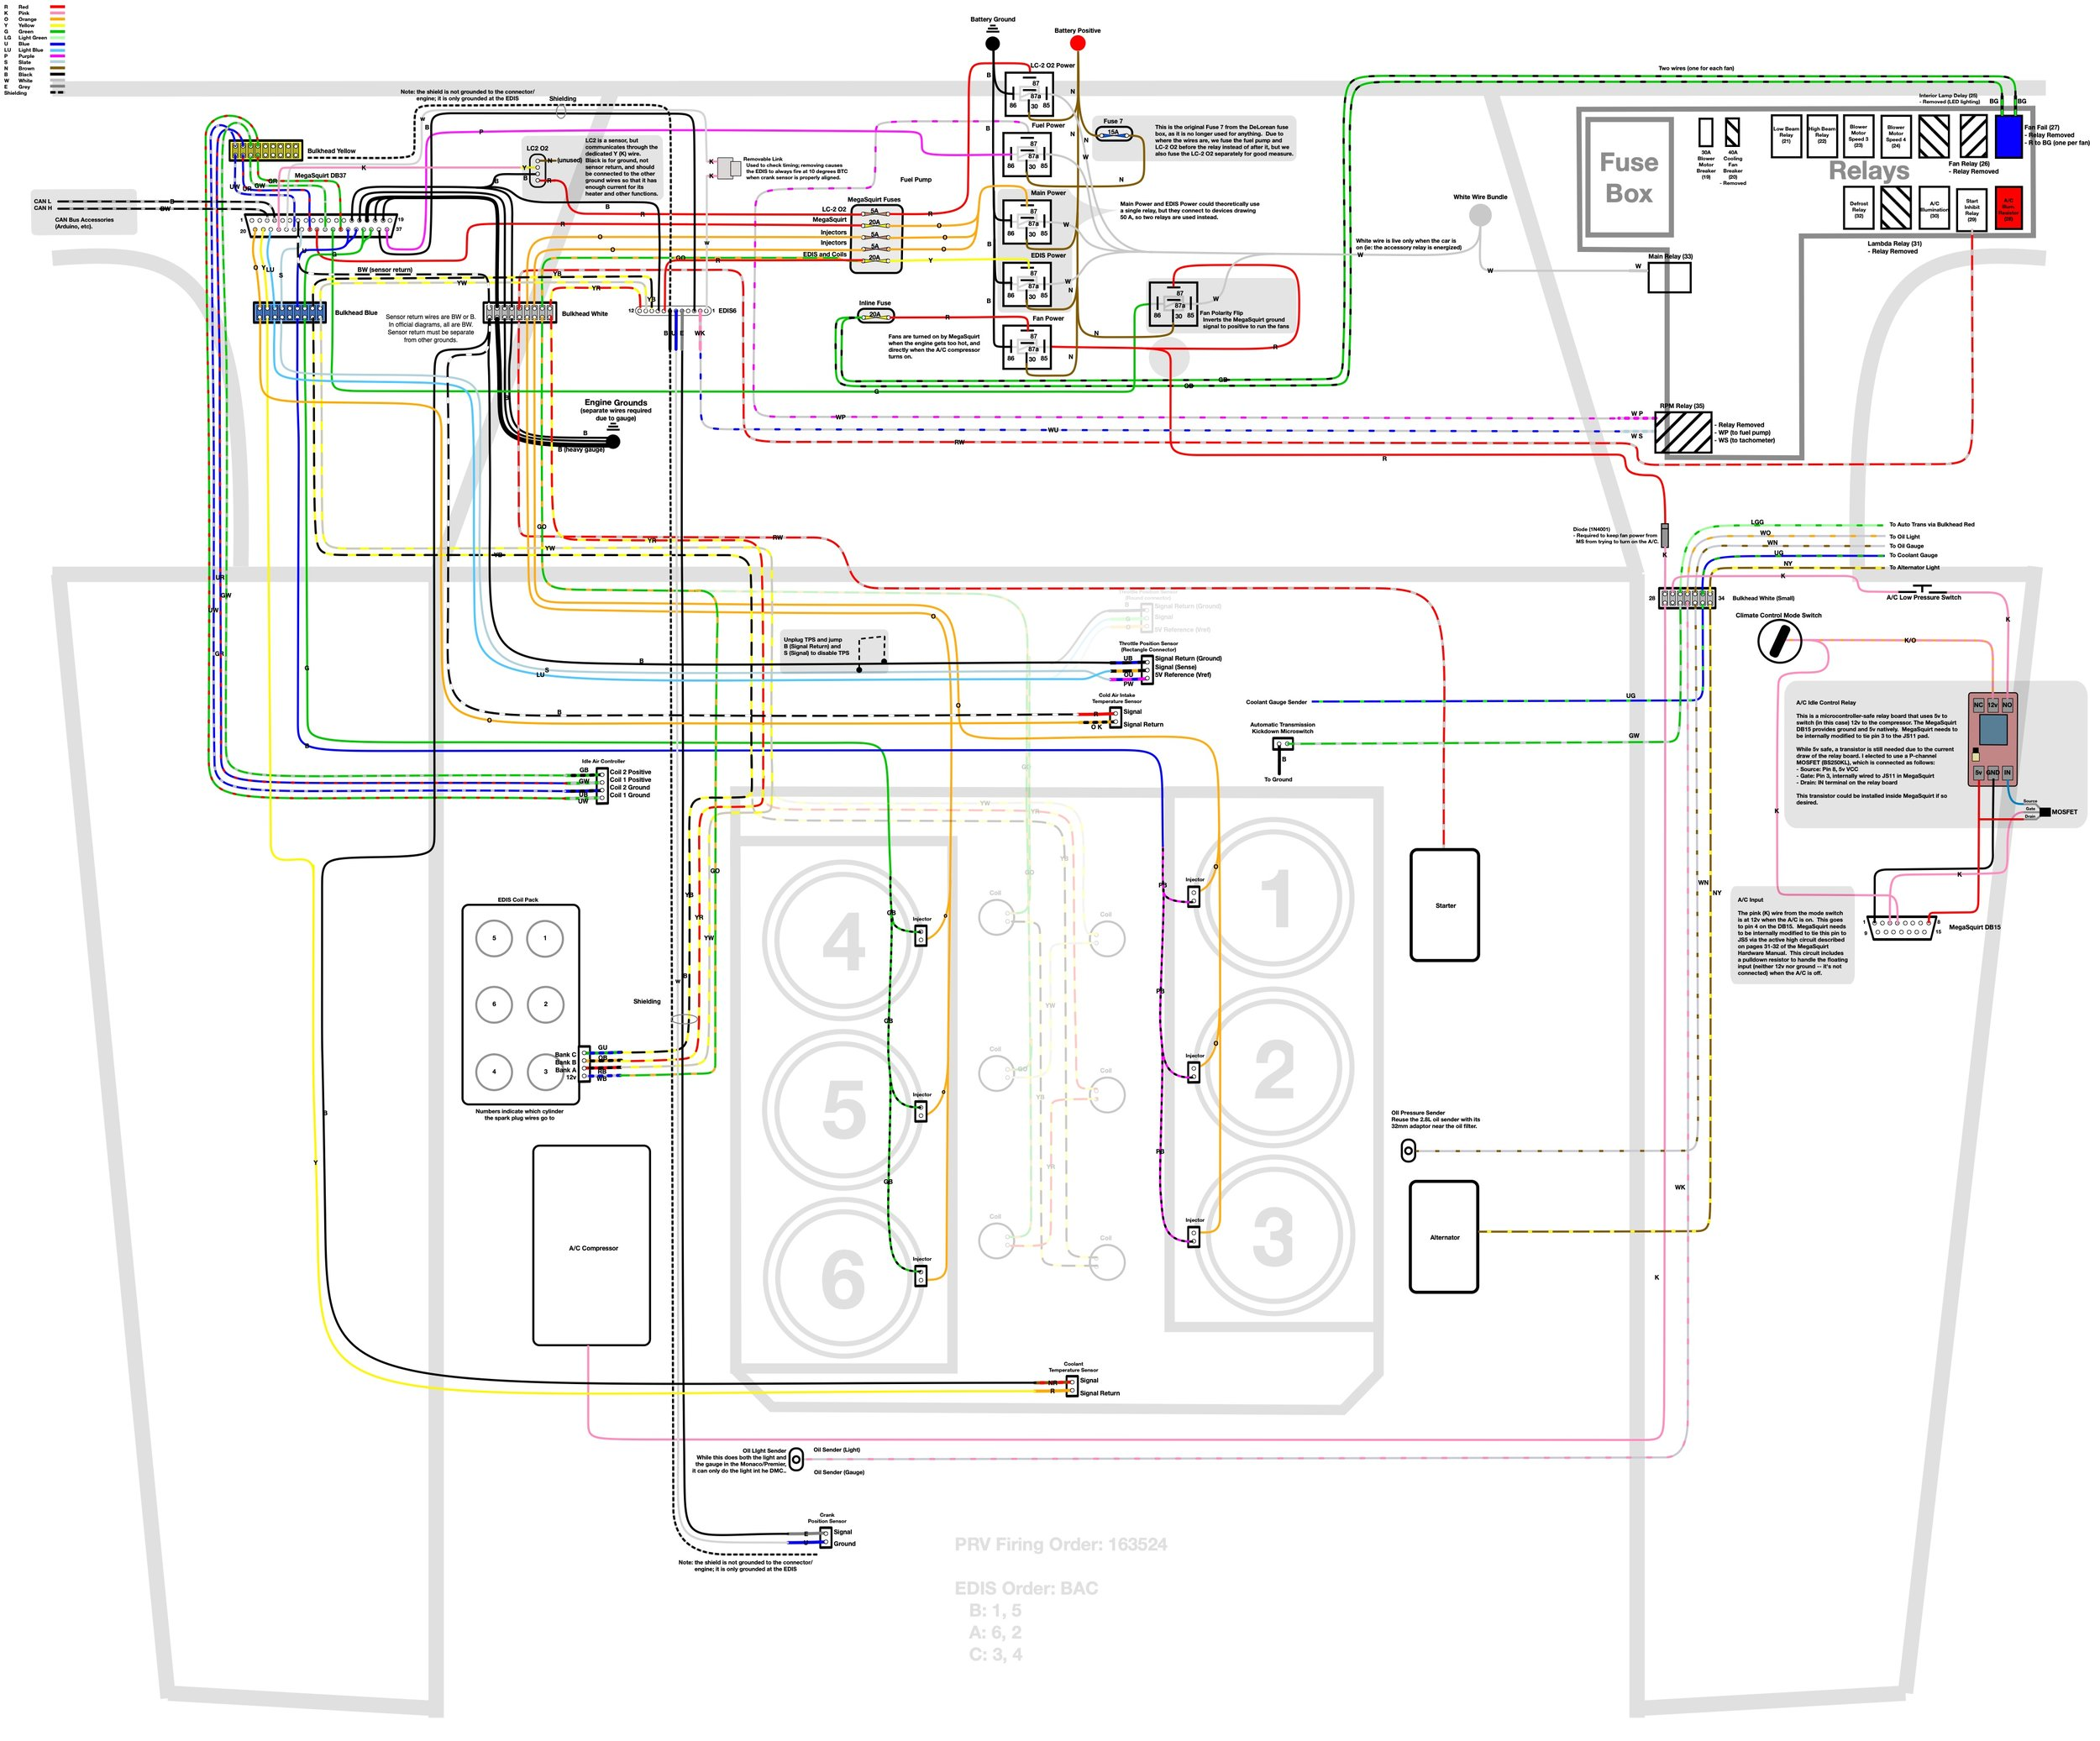 wiring installing the new harness and fuel injector refurbishing rh tmproductions com 03 S10 Wiring Colors Tempstar Heat Pump Wiring Diagram